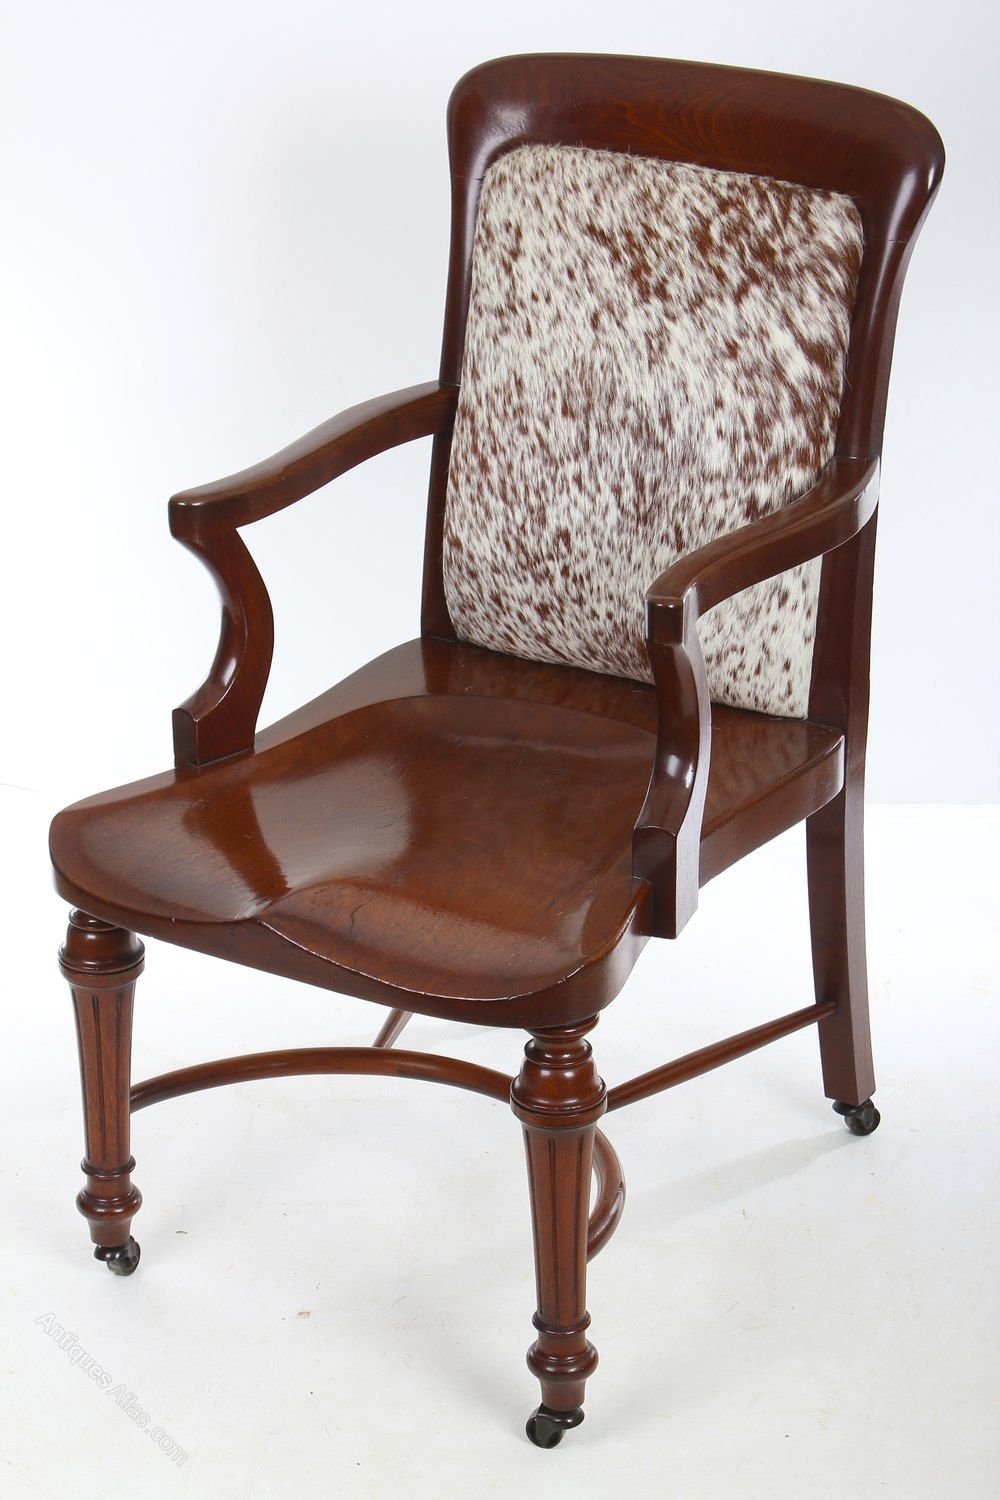 Solid Mahogany Victorian Desk Chair In 2020 Chair Desk Chair Vintage Furniture